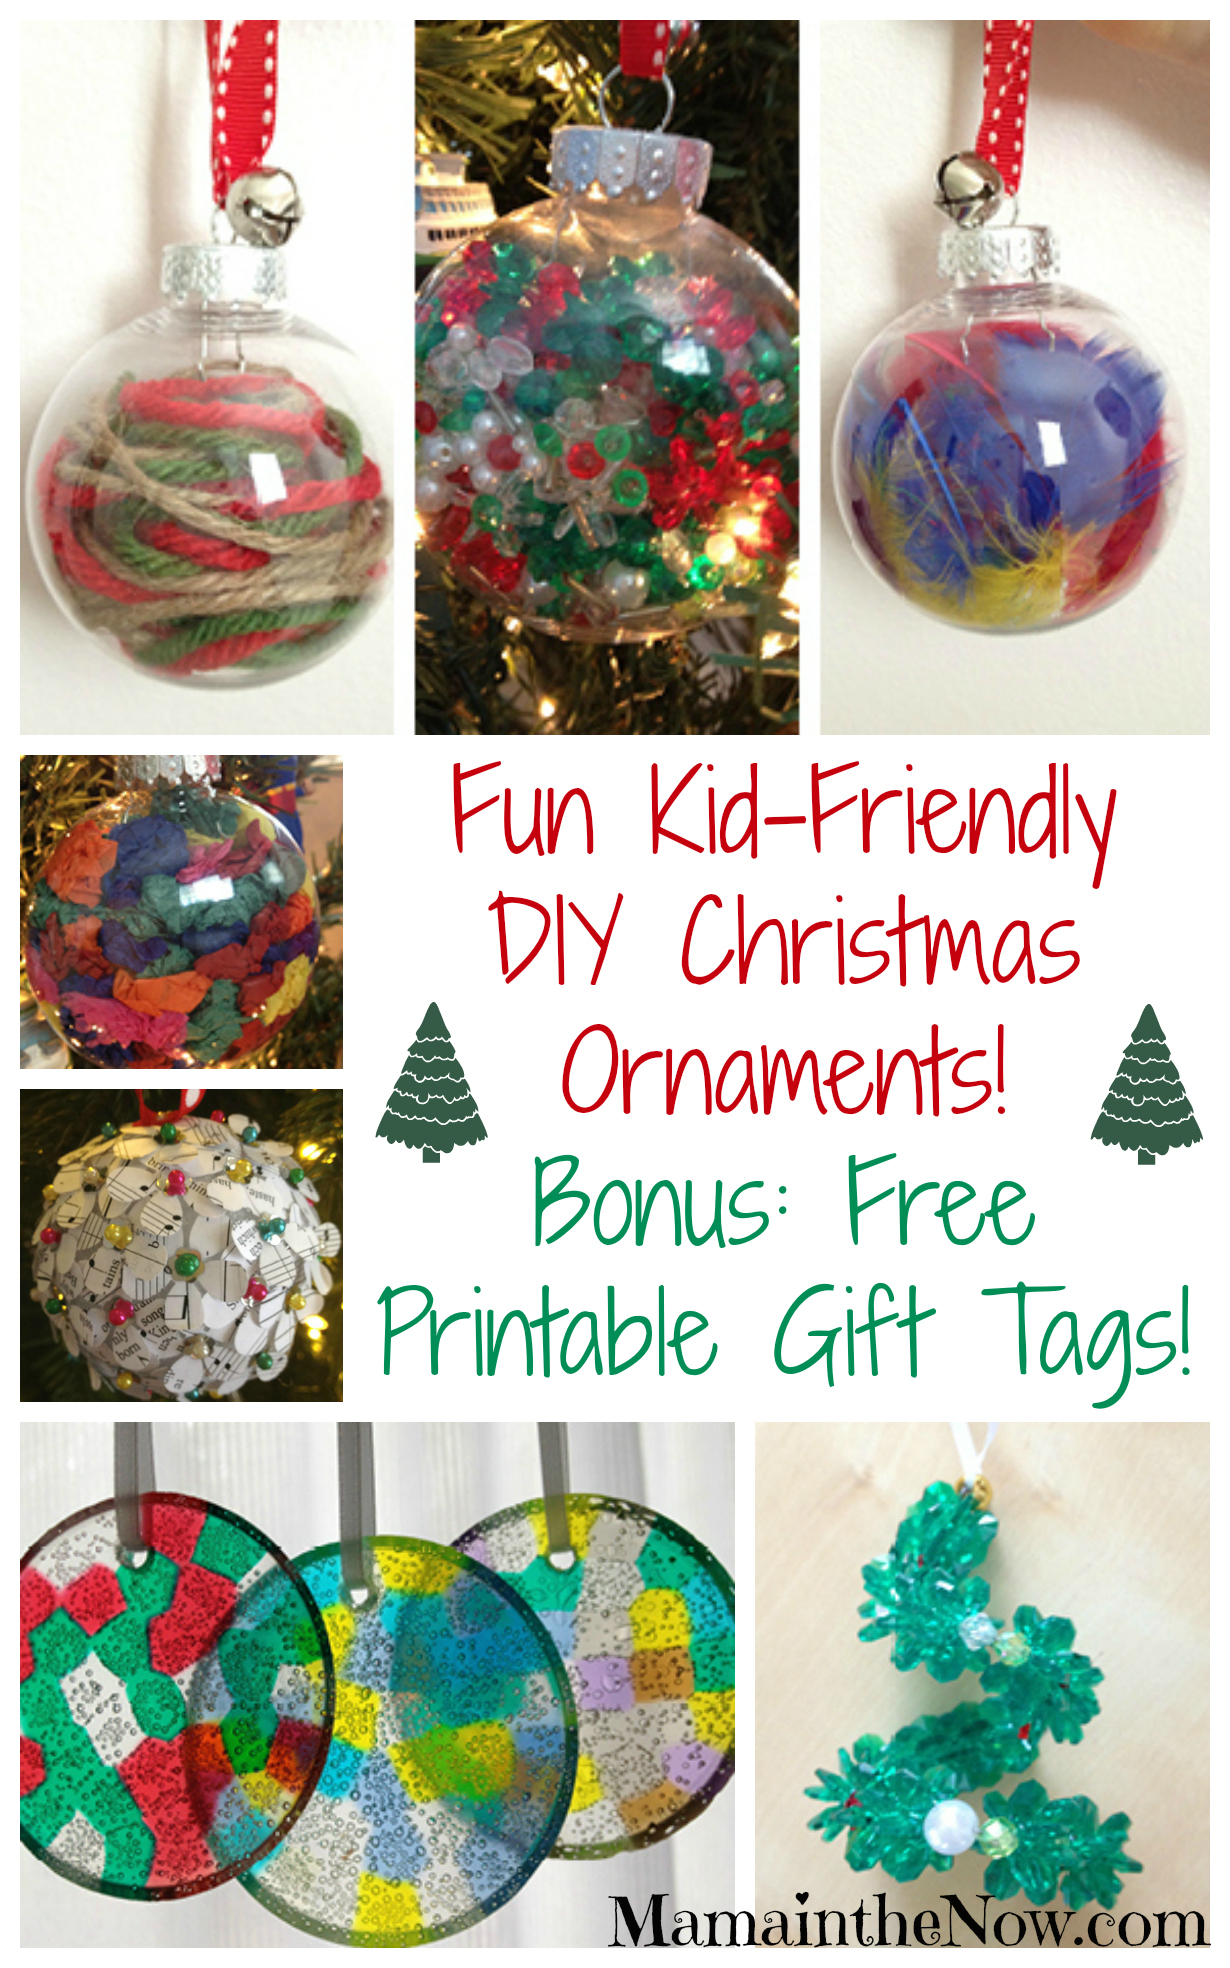 Easy Kid-Friendly DIY Christmas Ornaments!